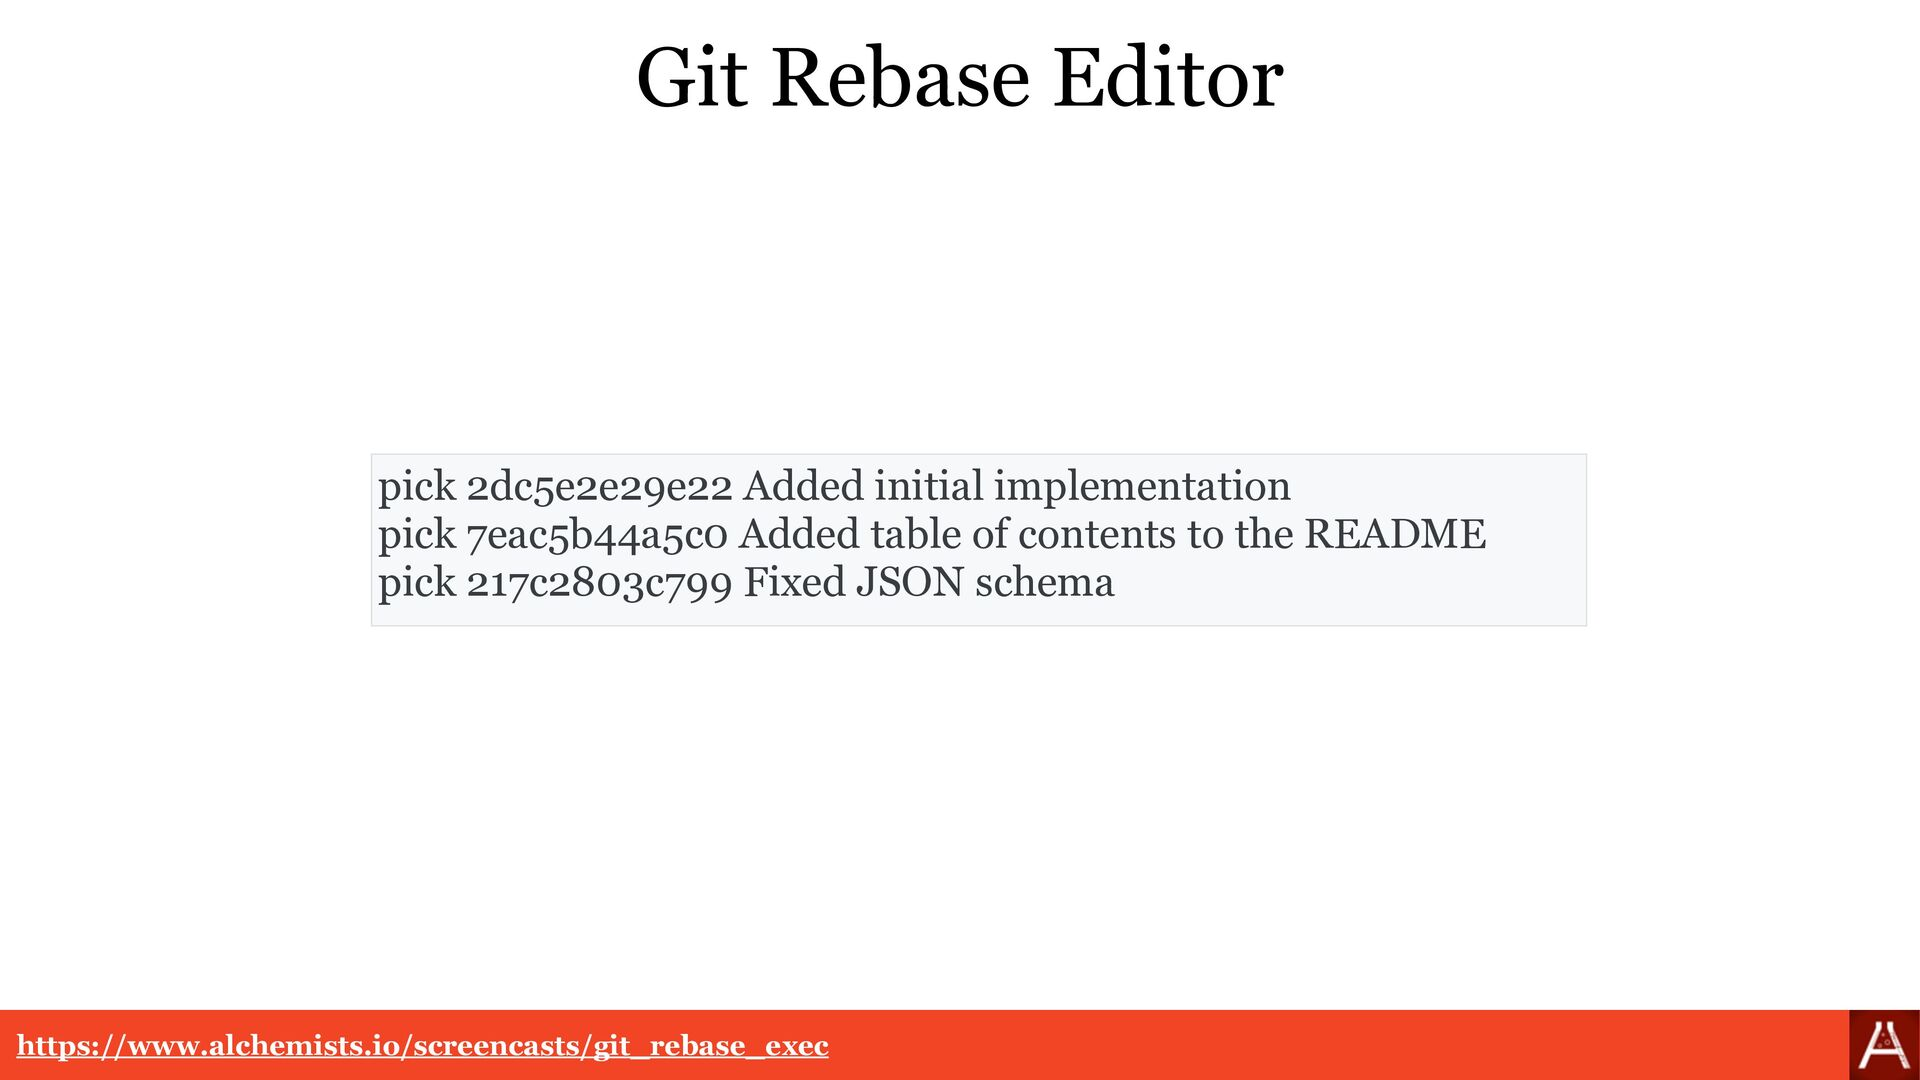 Git Rebase Break https://www.alchemists.io/scre...